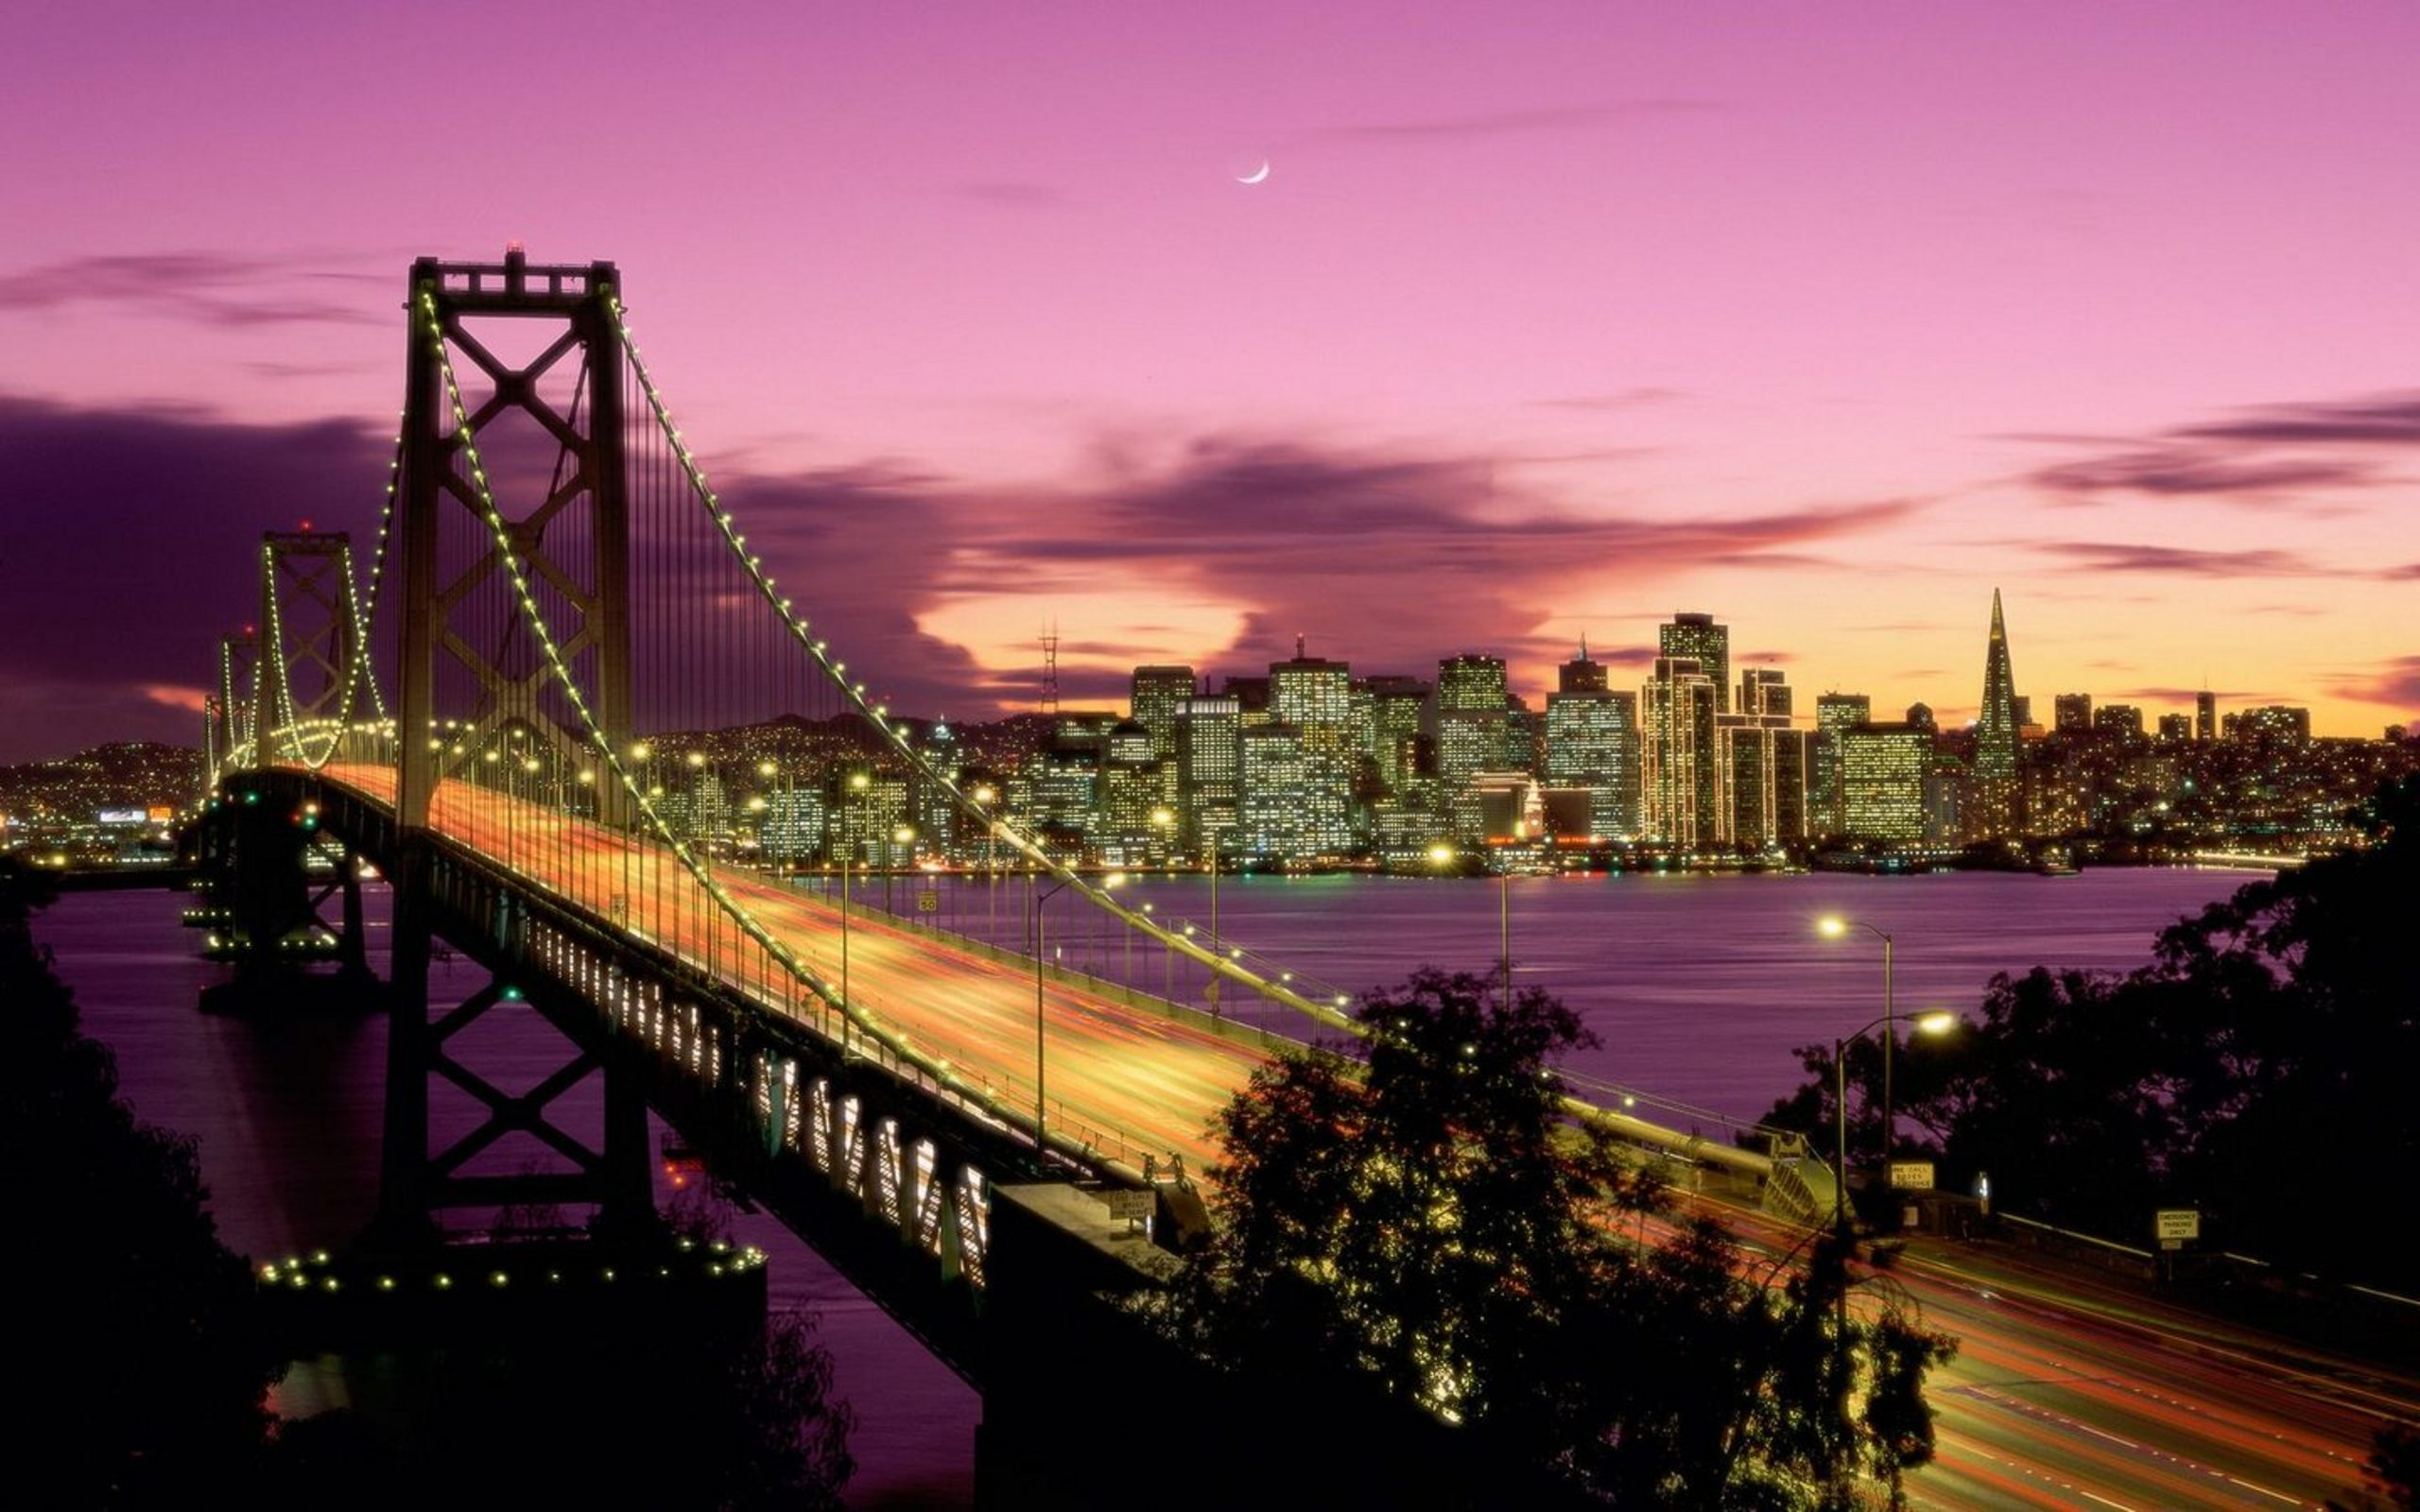 San Francisco Bridge California wallpaper